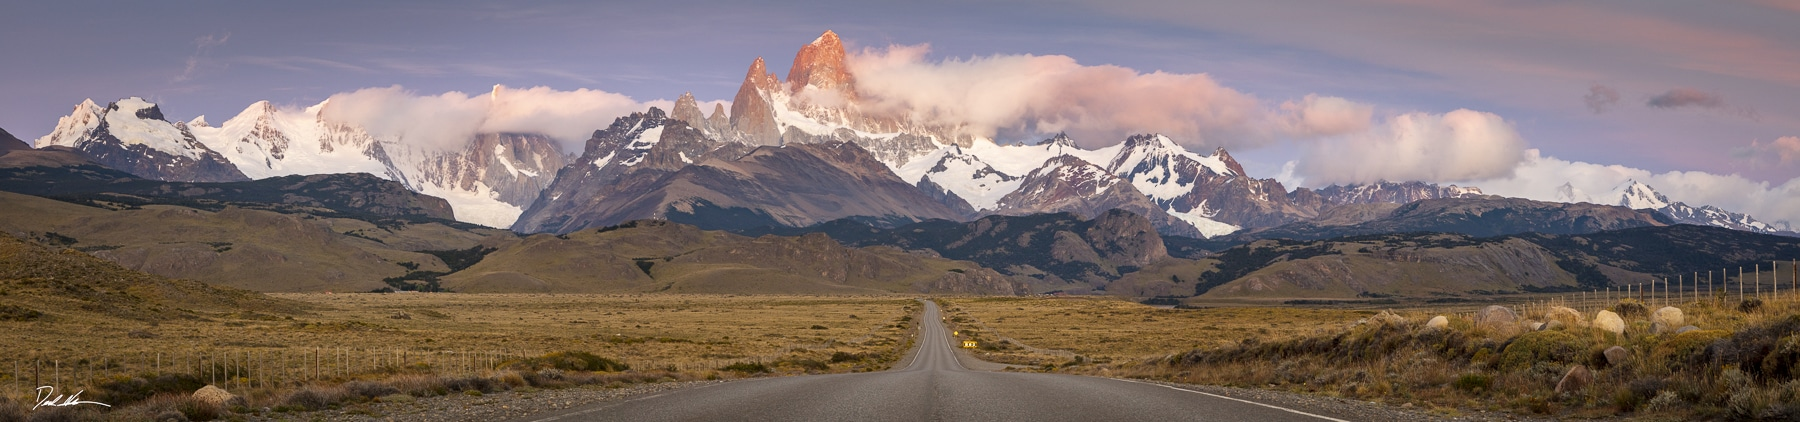 sunrise on road to Mount Fitz Roy